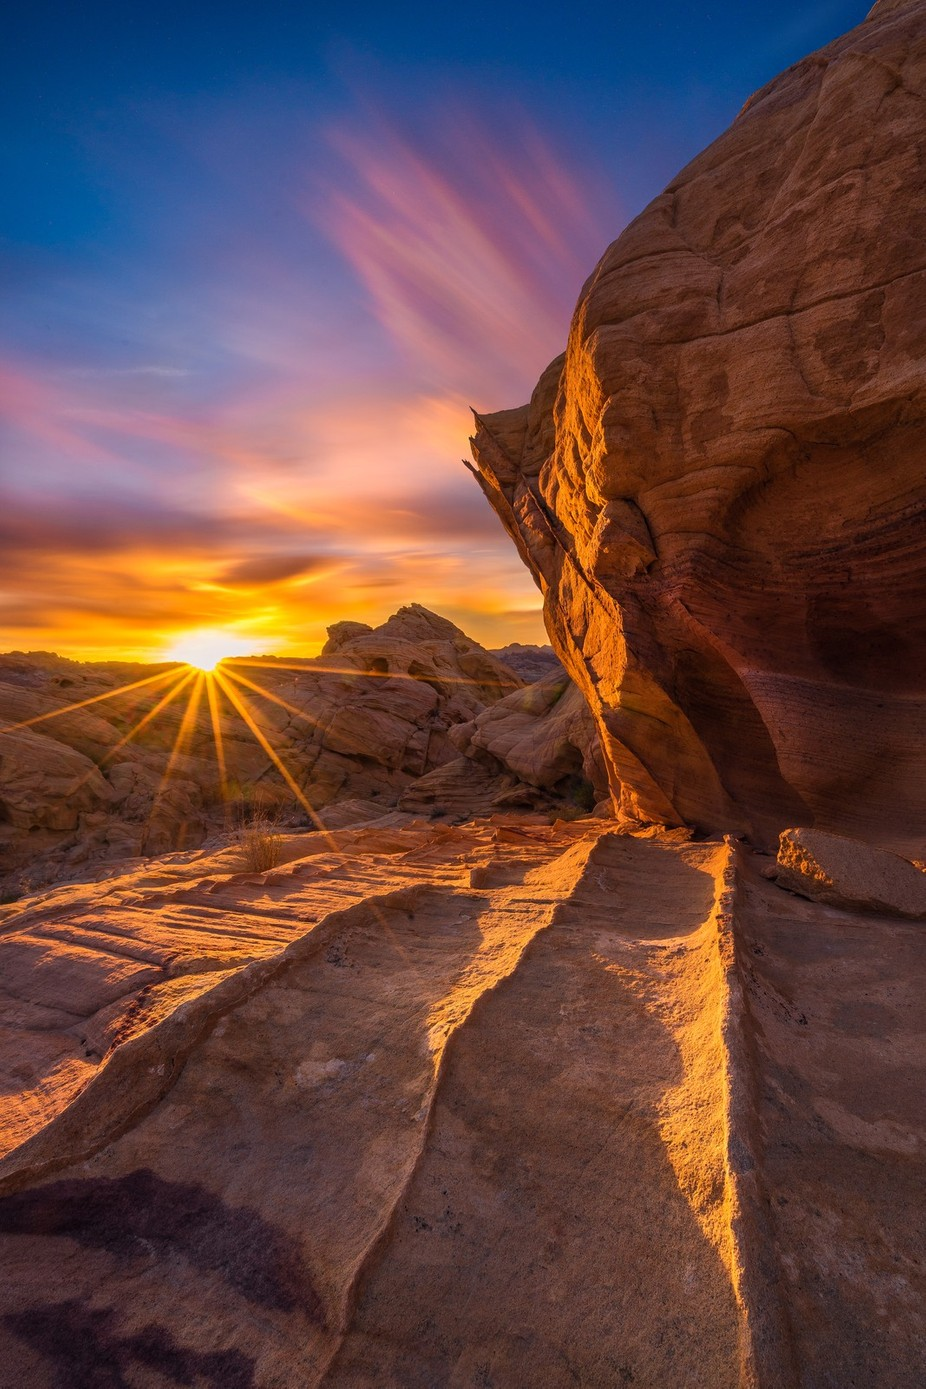 Sunset at Valley of Fire by jessicacathrinesantos - Compositions 101 Photo Contest vol4